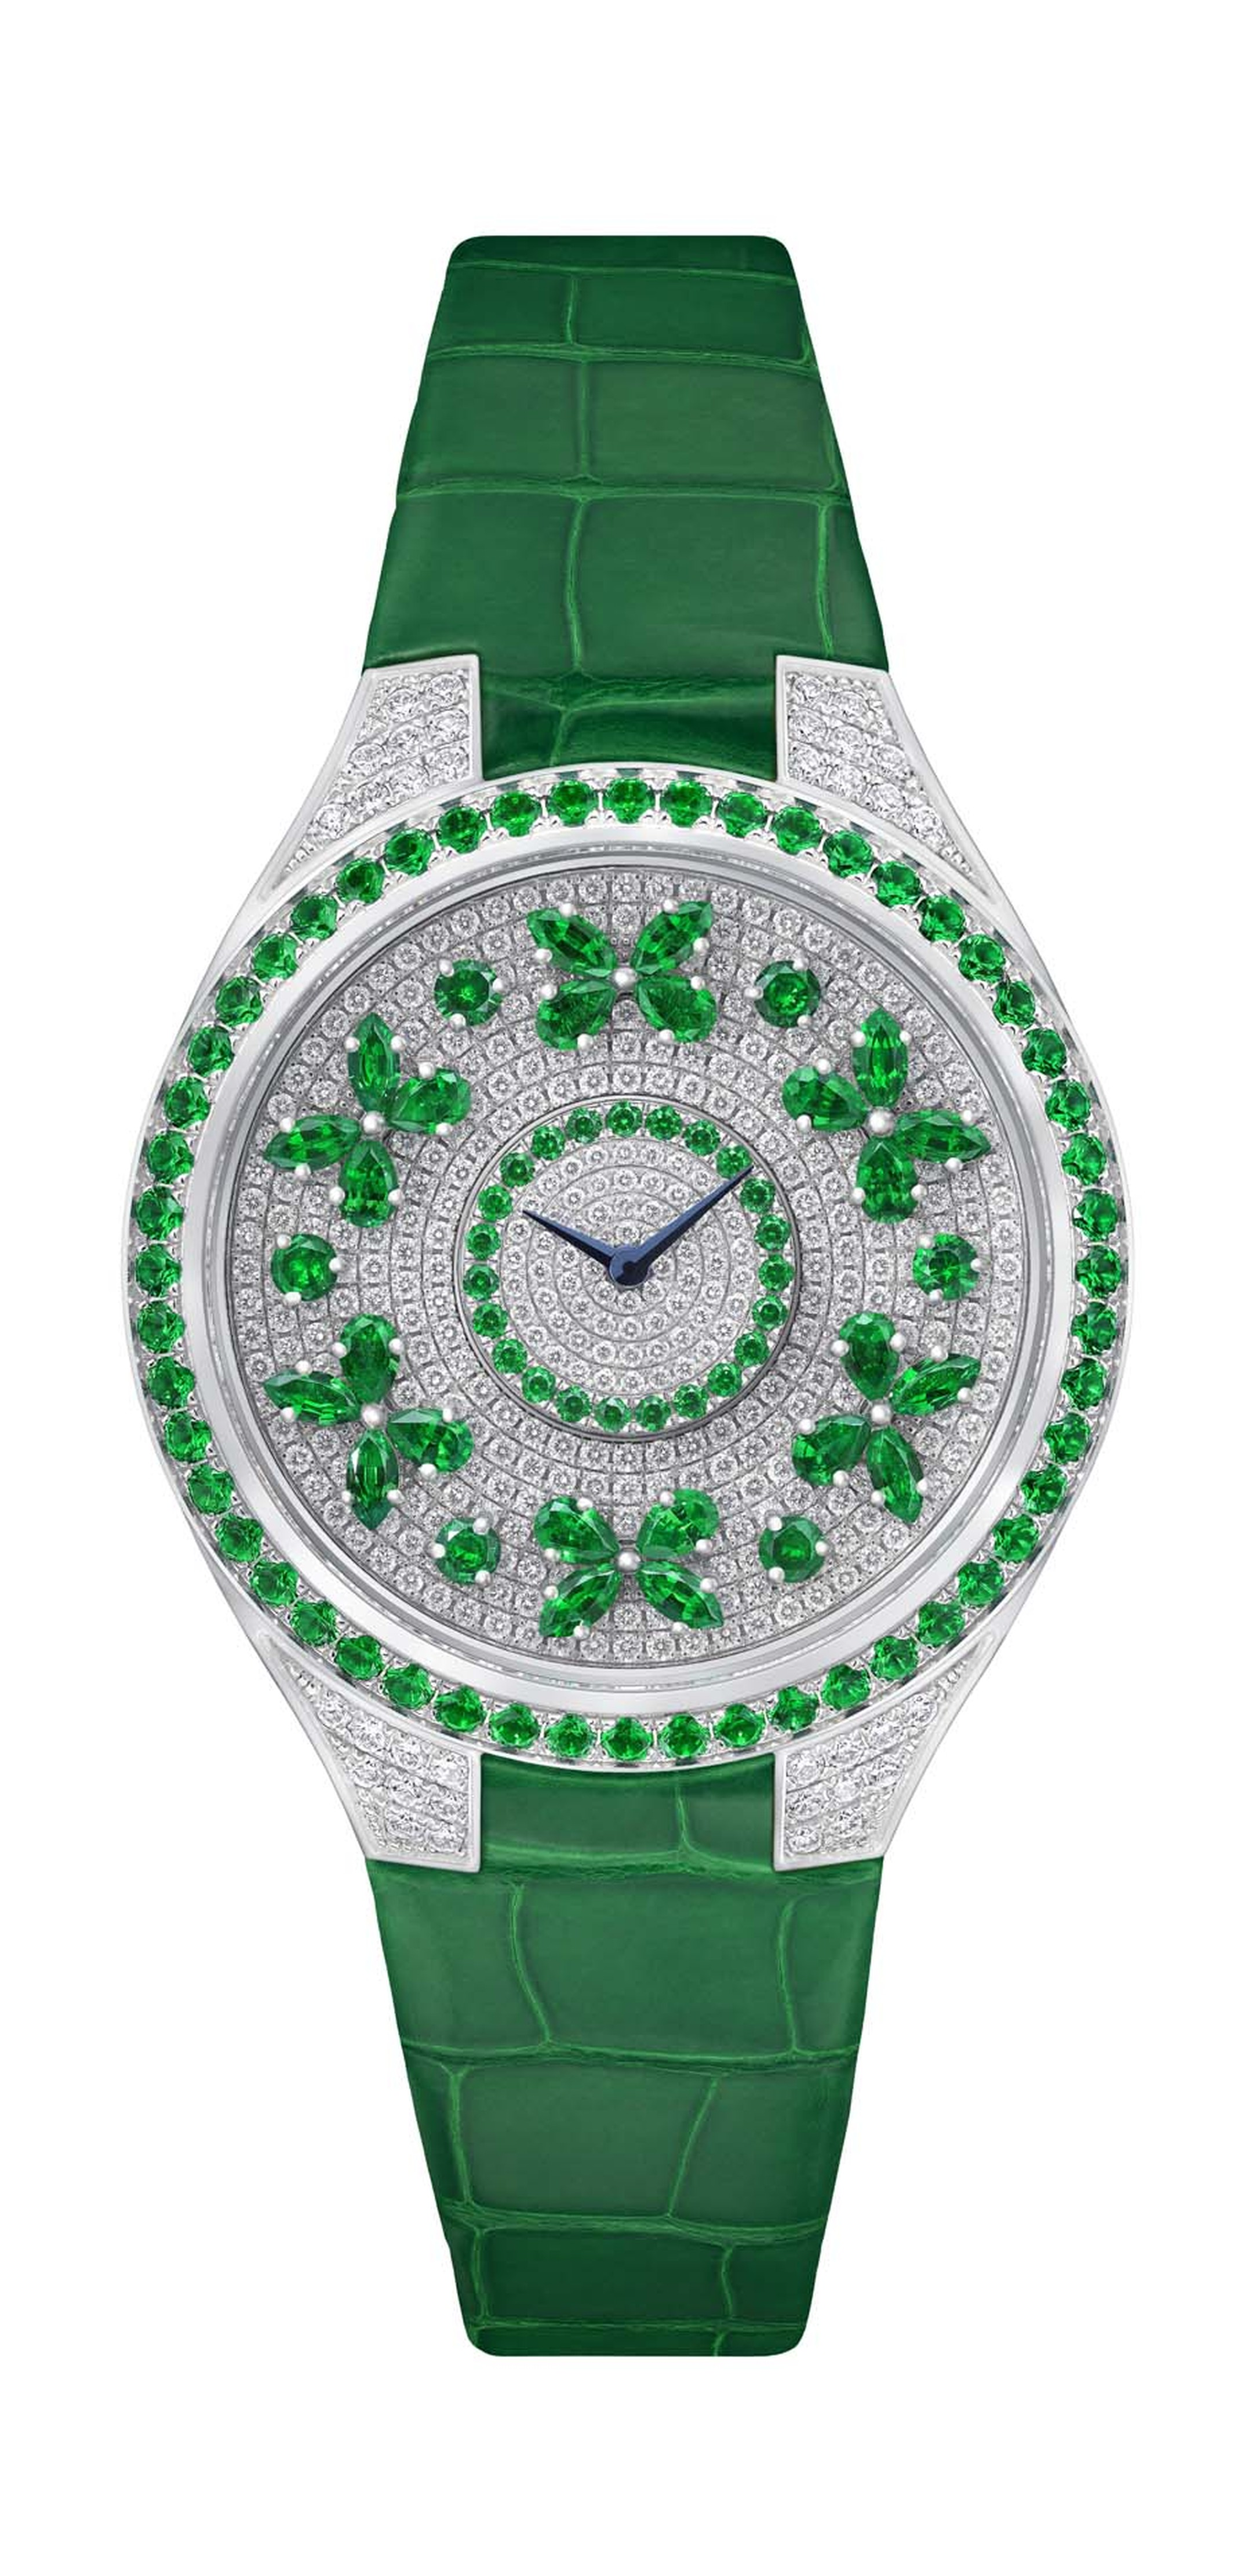 Butterfly and fish watches_Graff_Butterfly disco white and emerald diamond watch.jpg